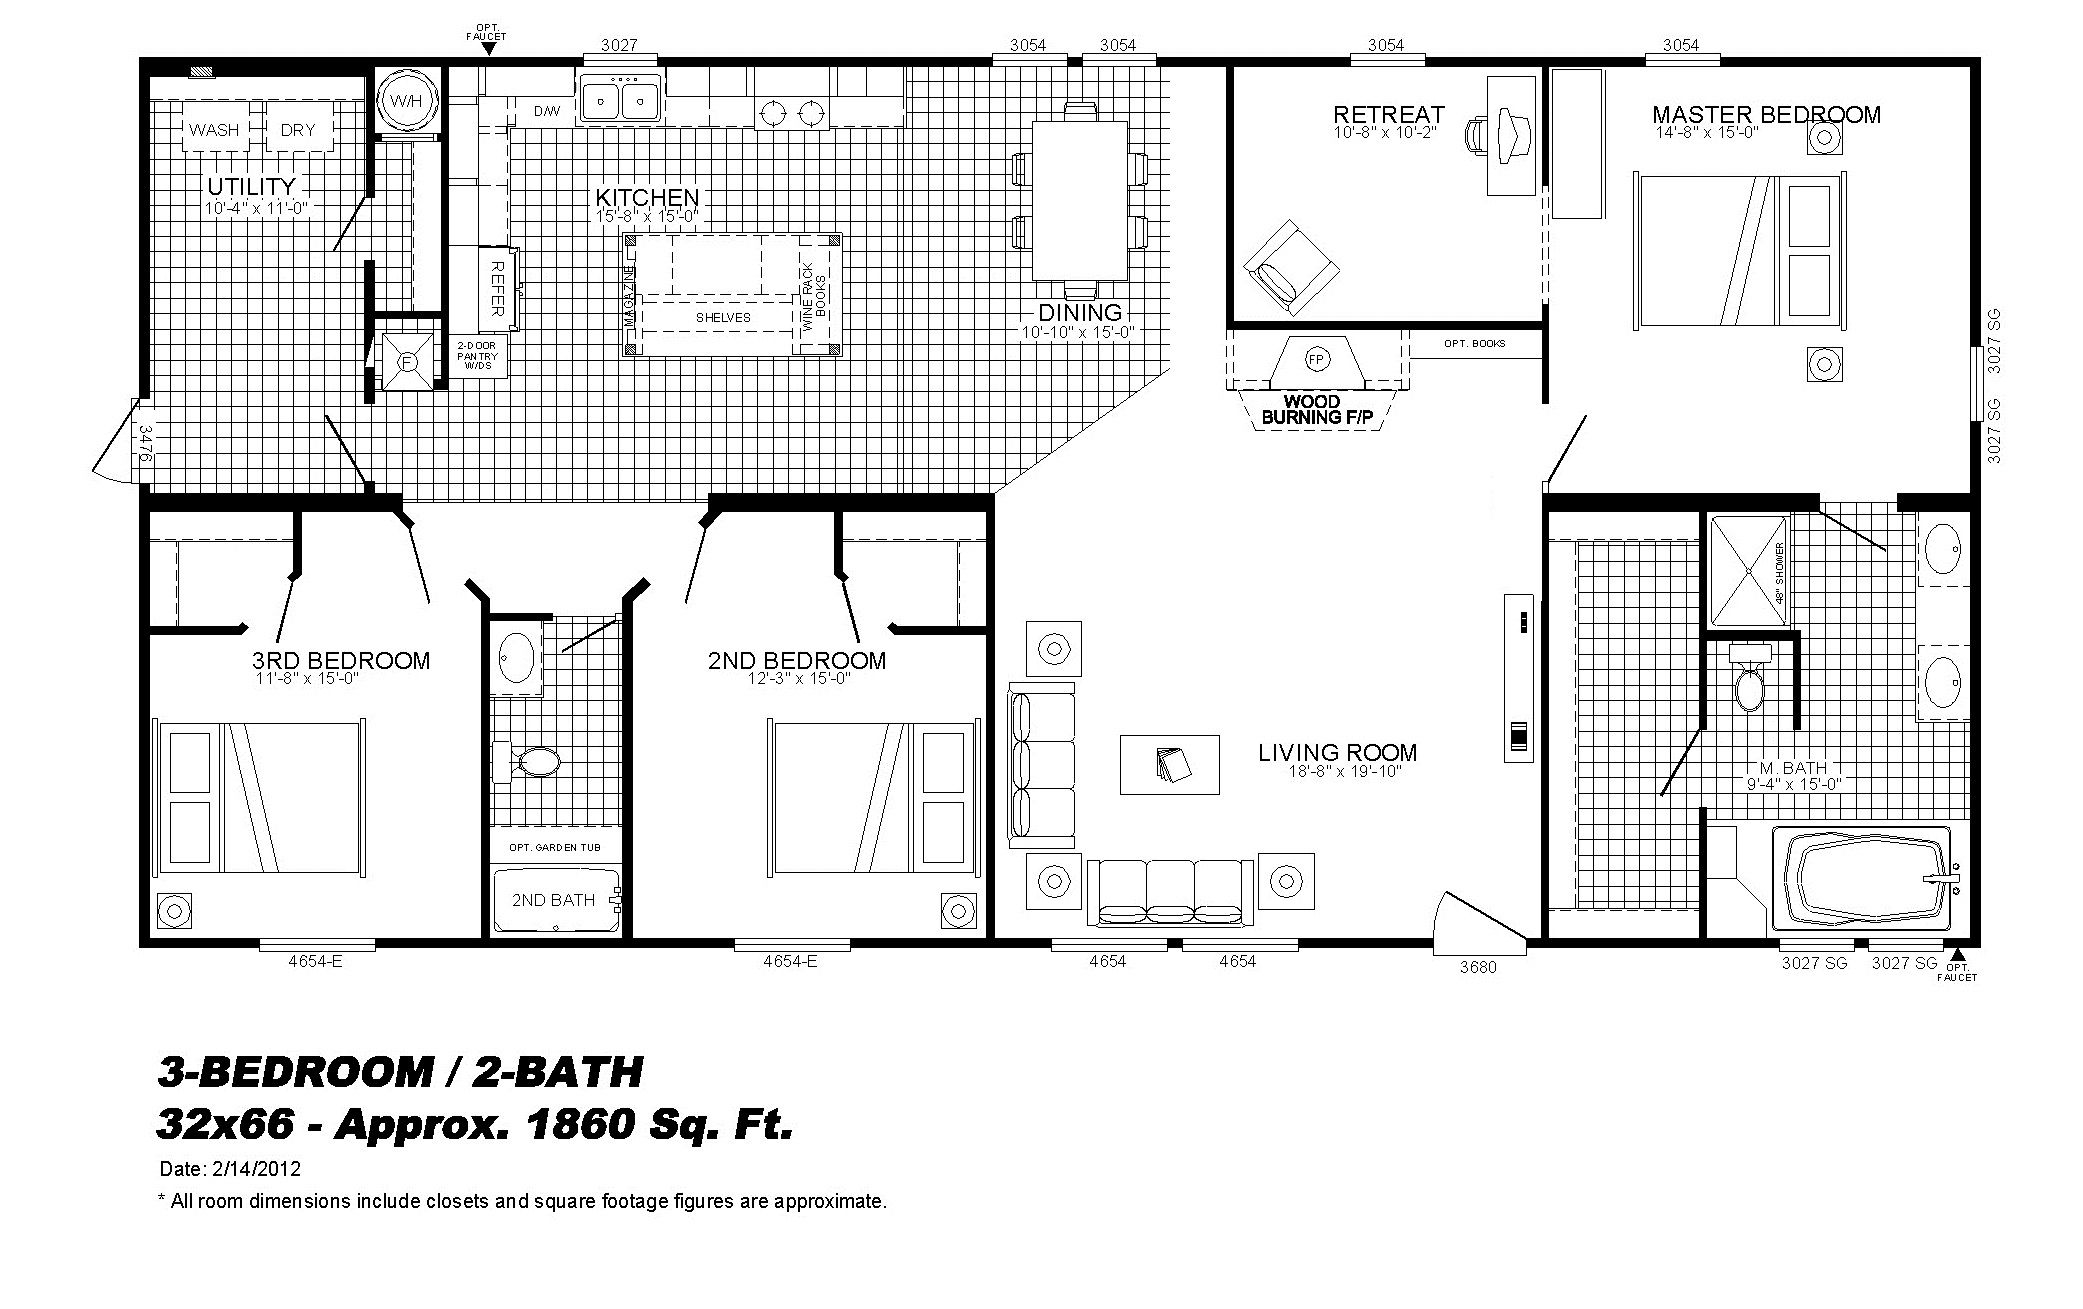 3bedrooms With Parents Retreat Don T Love This Floor Plan But I Like The Master Bedroom Layout Some Floor Plans House Plans House Floor Plans